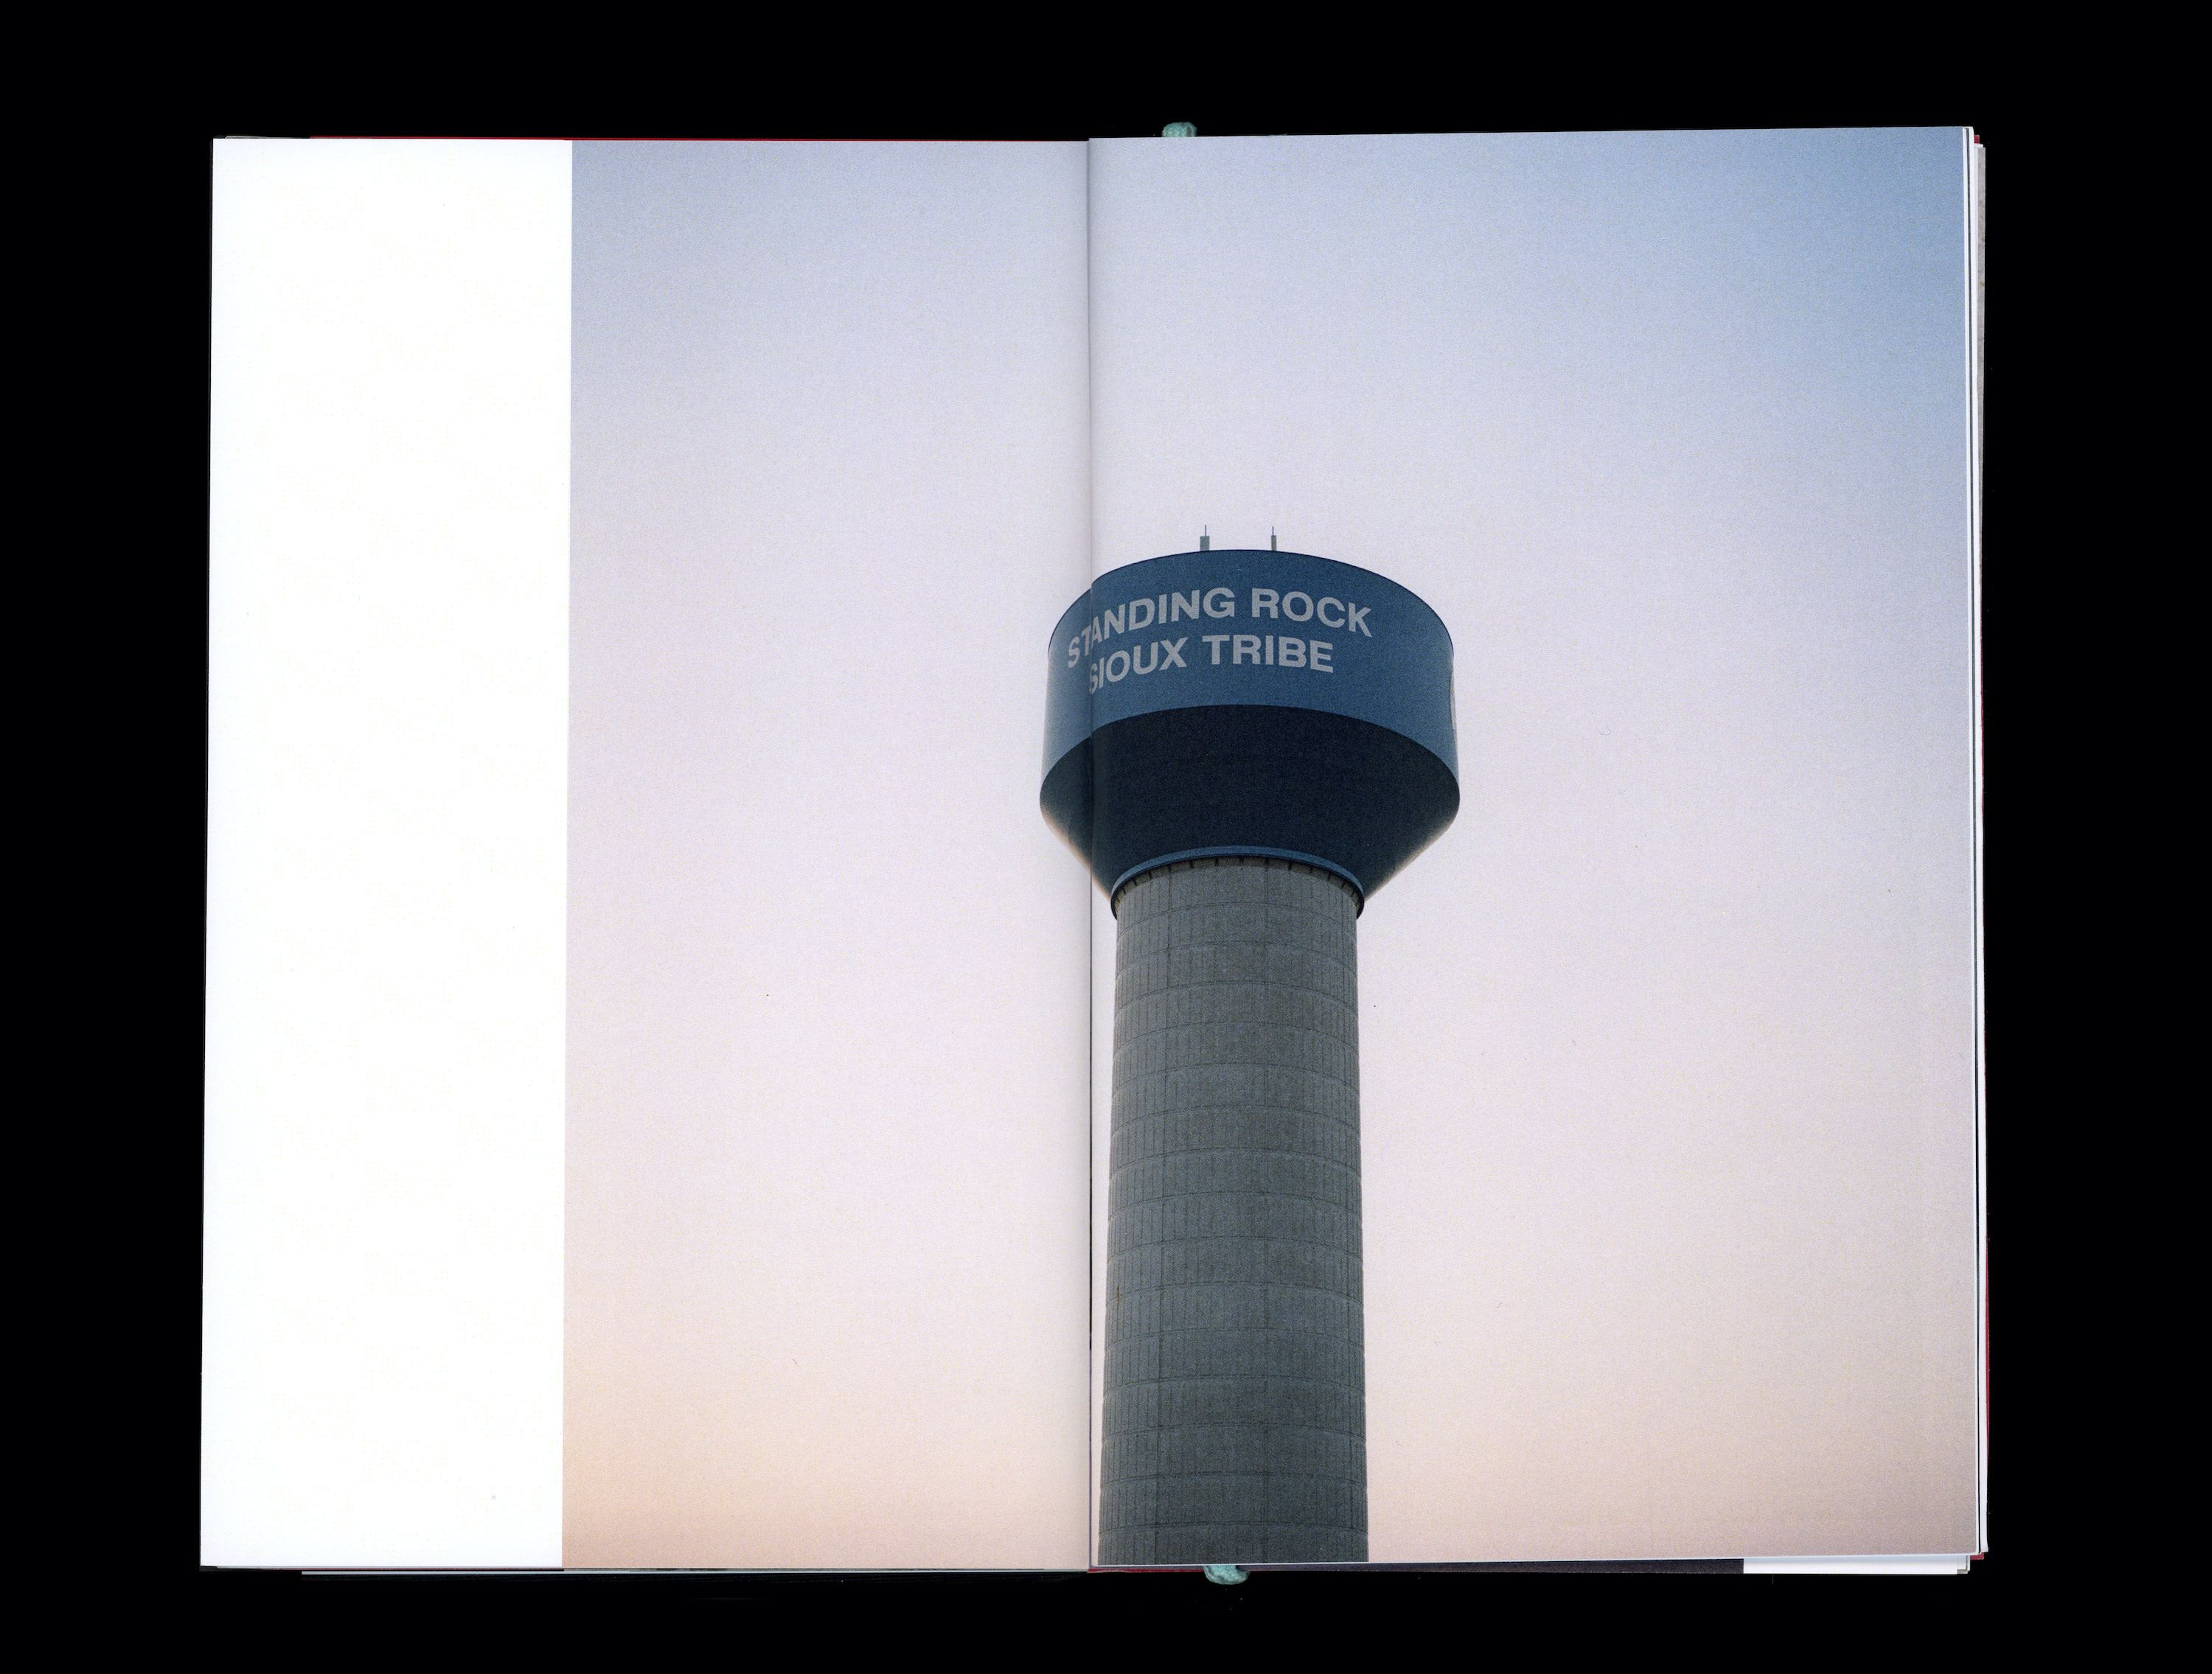 Photograph in book of Standing Rock Telecommunications tower